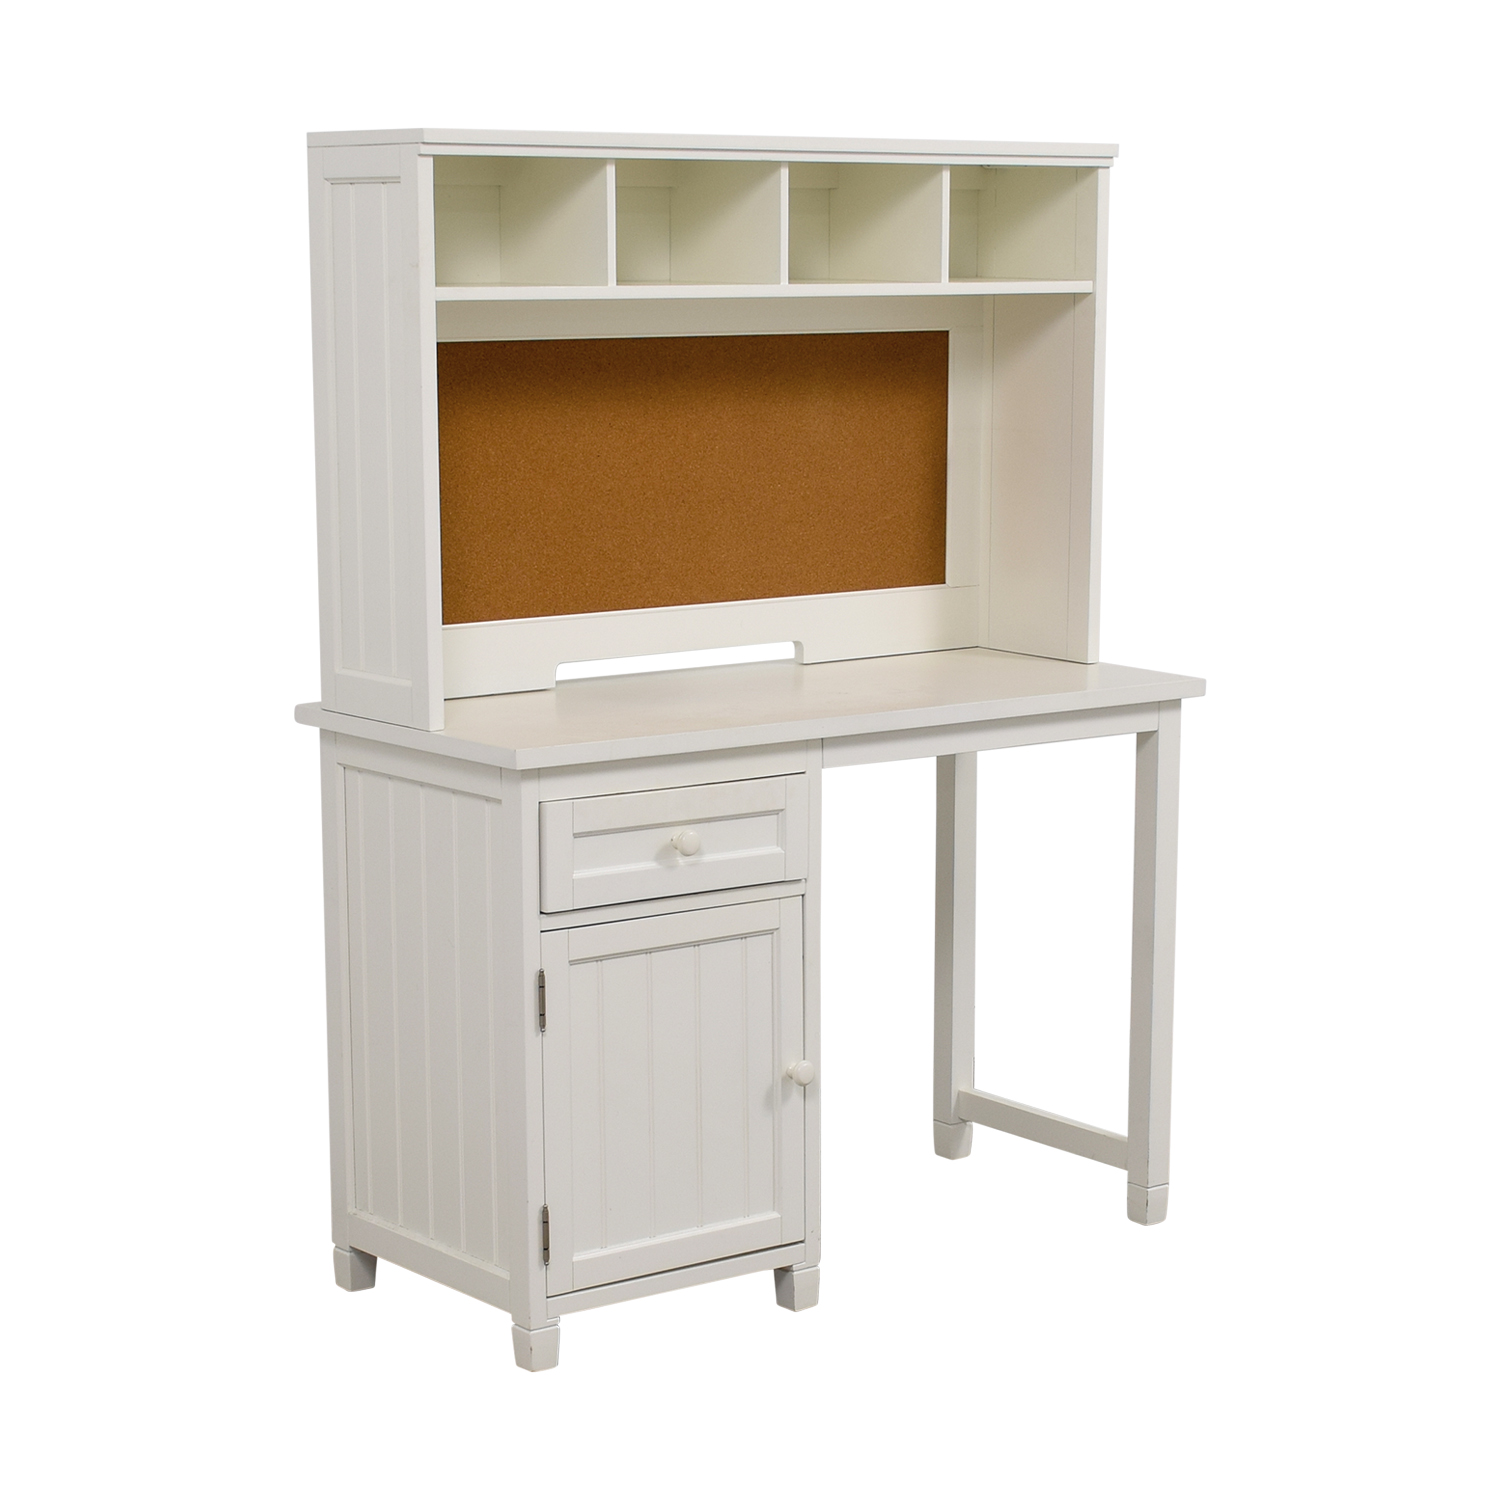 82 Off Pottery Barn Teen Pottery Barn Teen White Desk And Hutch